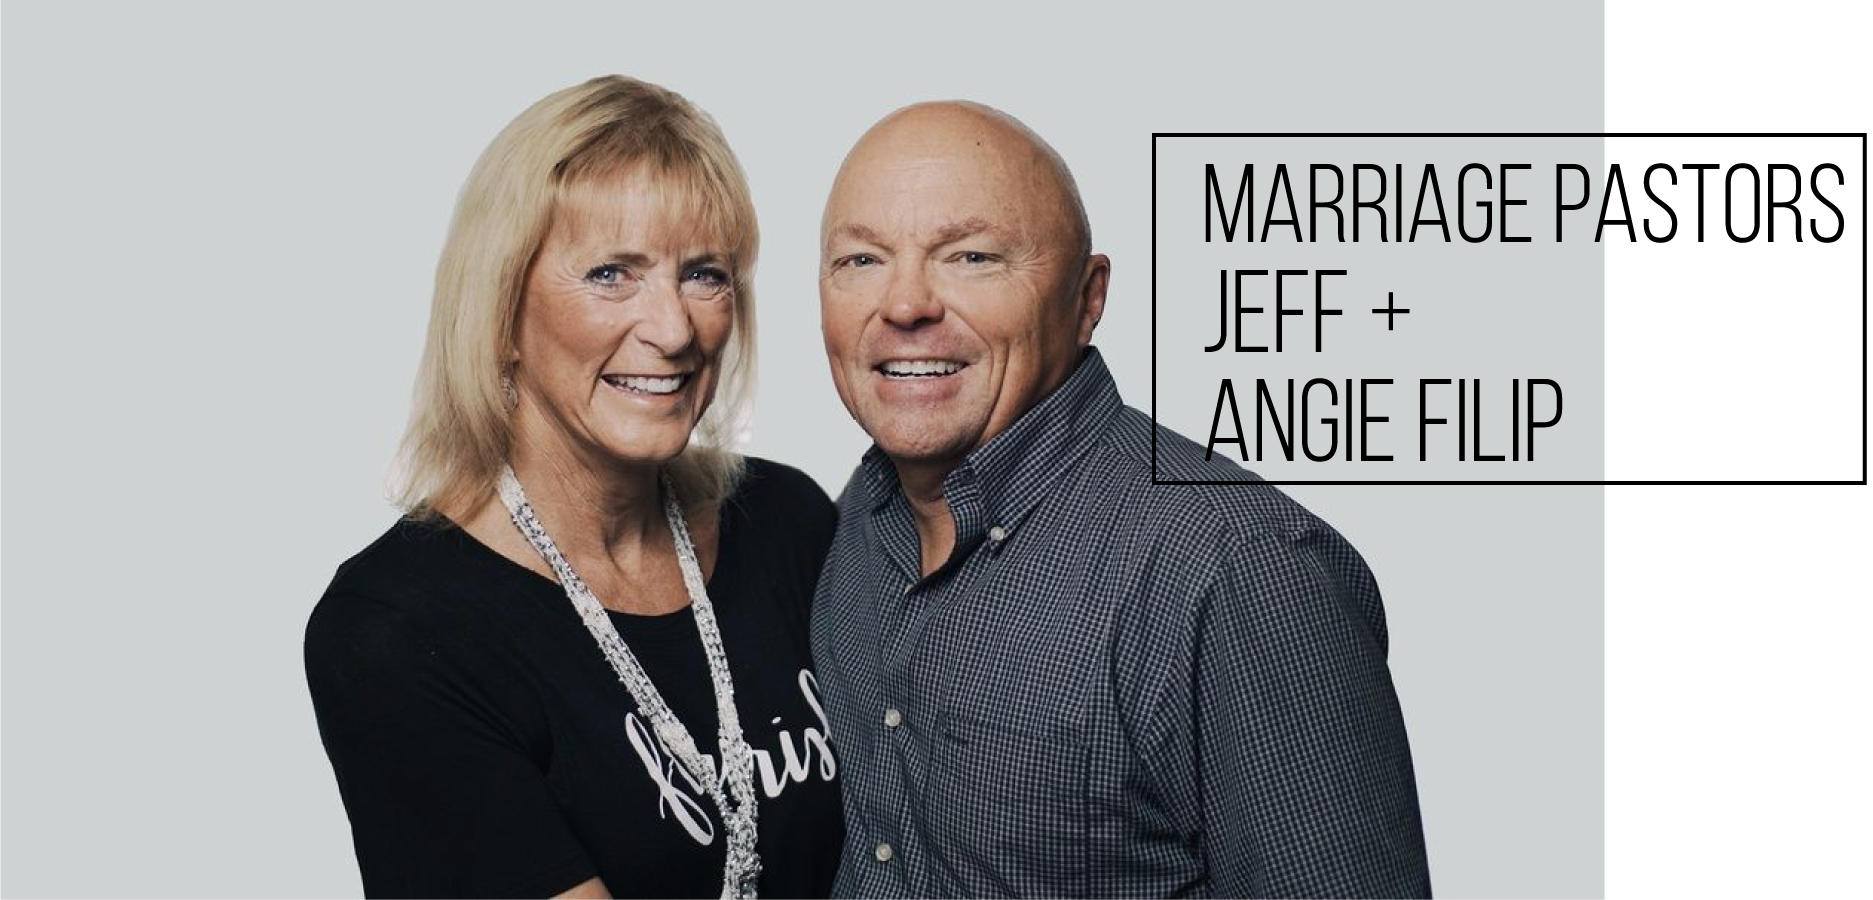 jeff-angie-filip-marriage-pastors.png